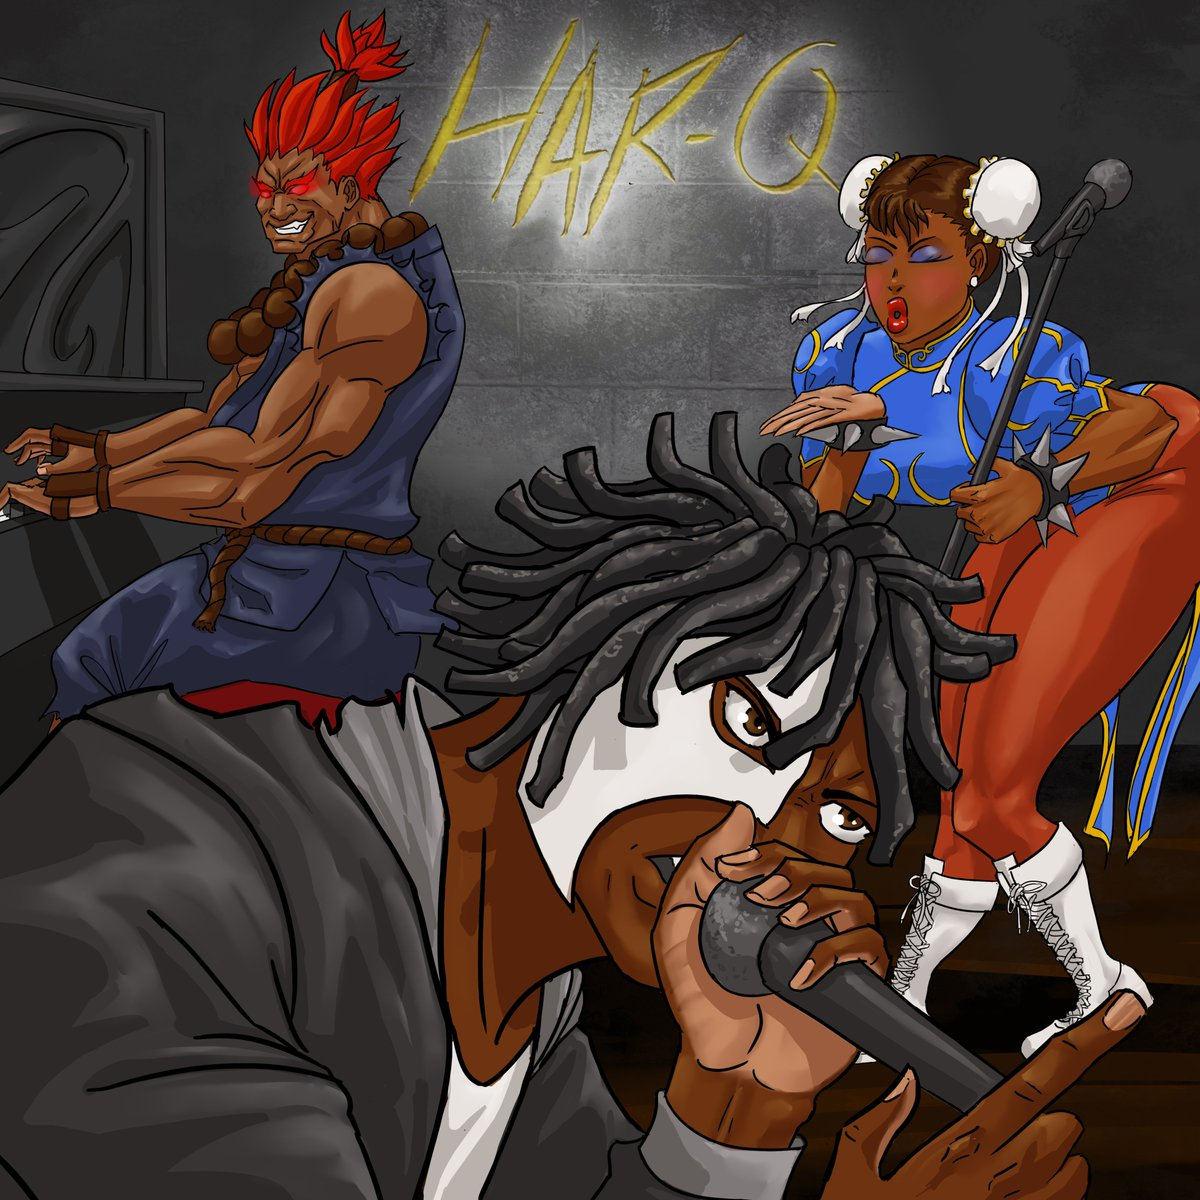 Really happy with the way this cover for Har-Q's new album turned out! I always enjoy collaborating with other creatives, I always learn so much!  #albumart #albumcover #streetfighter #chunli #akuma